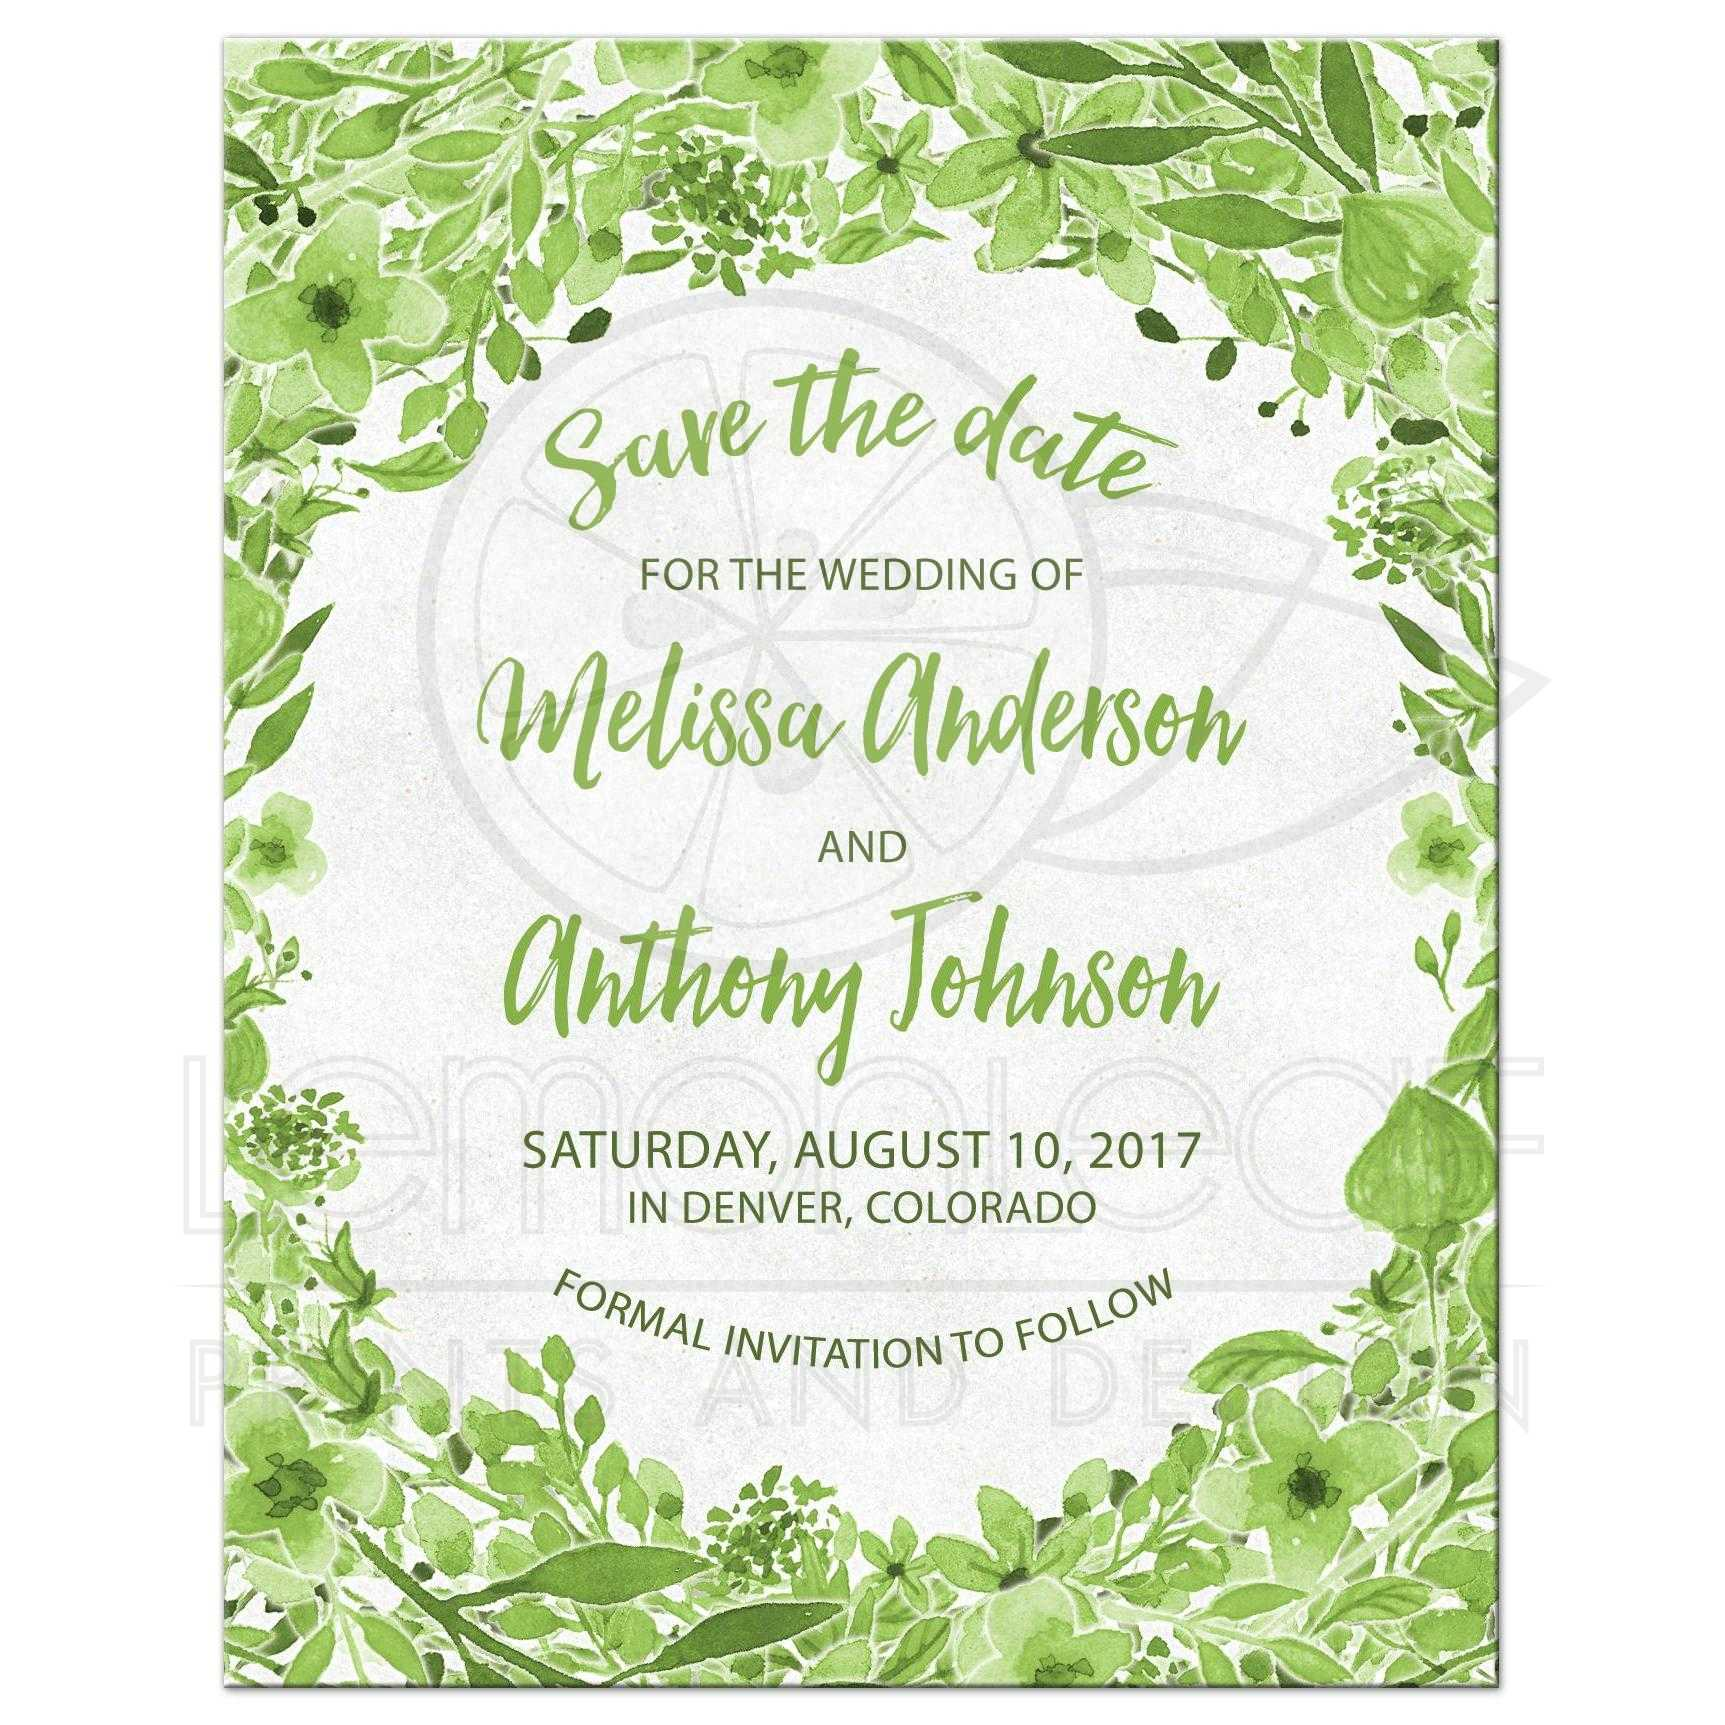 Greenery Botanical Wedding Save the Date Green White Watercolor